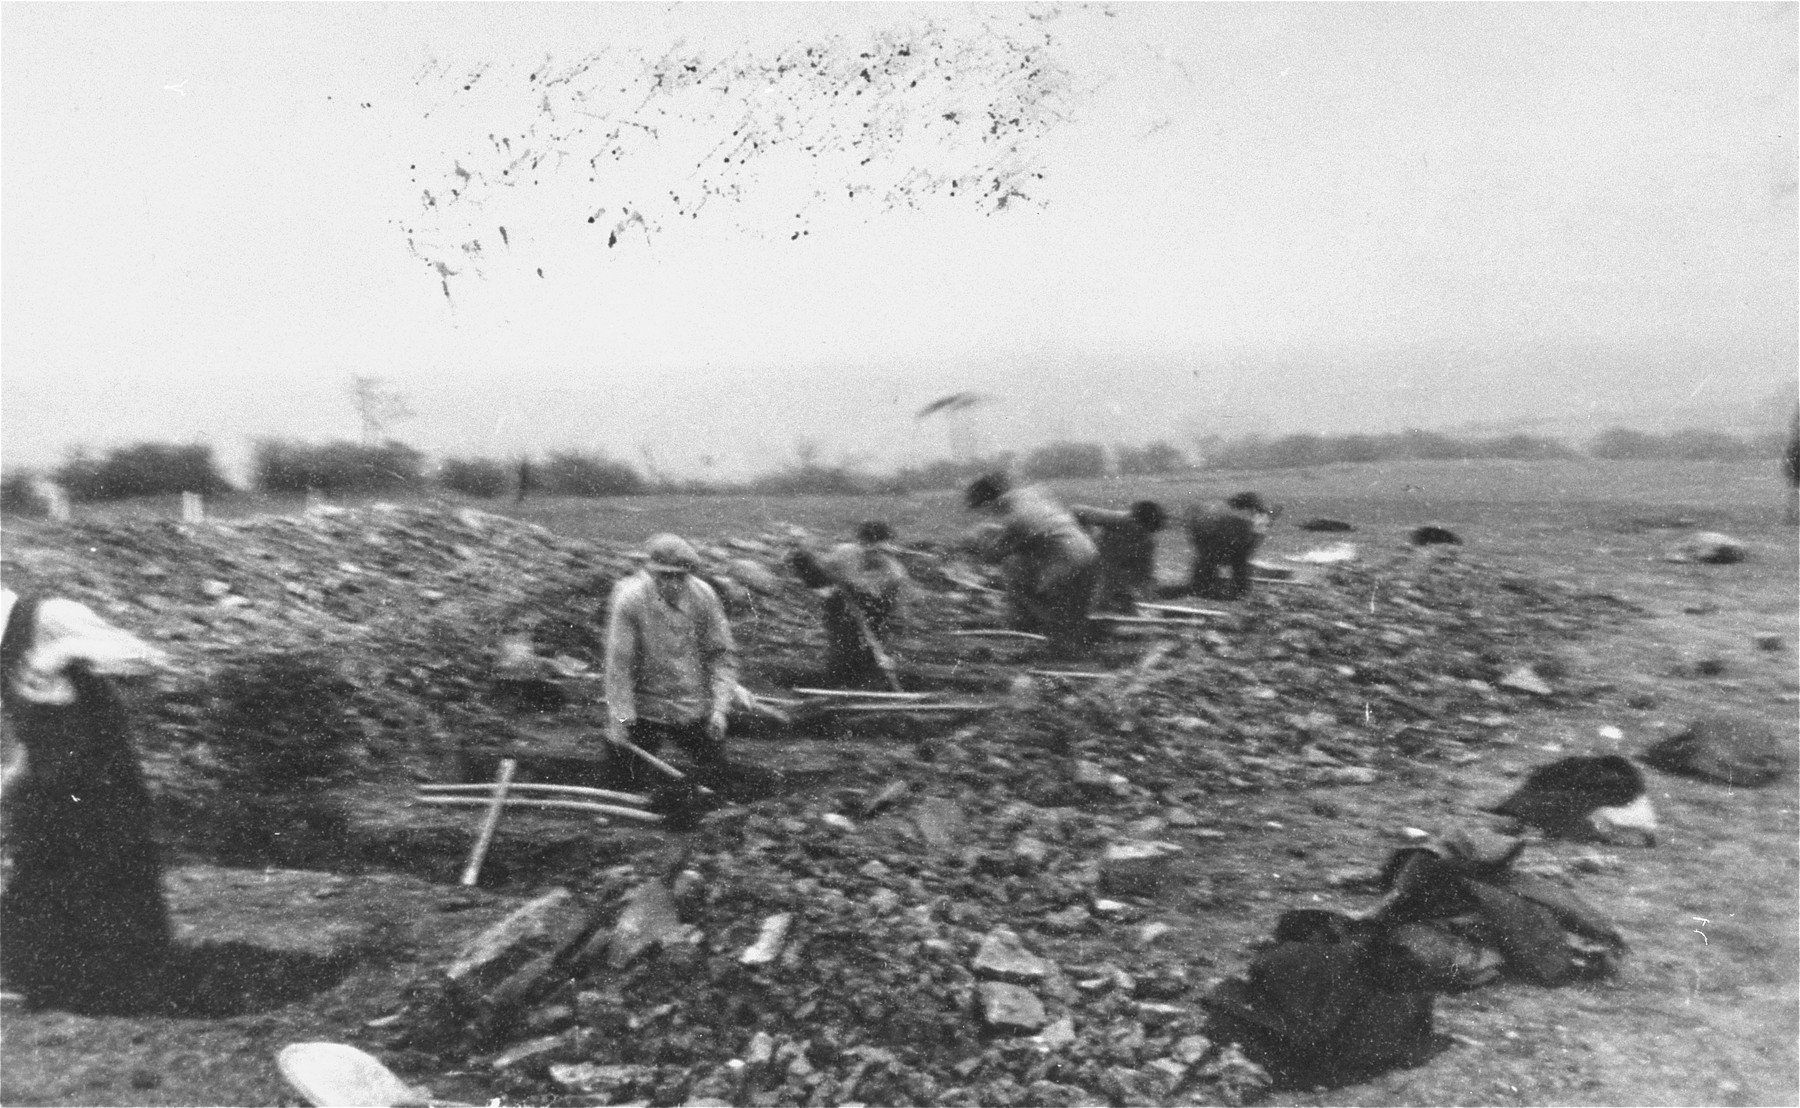 German civilians digging graves for corpses found in Ohrdruf by the U.S. Army.